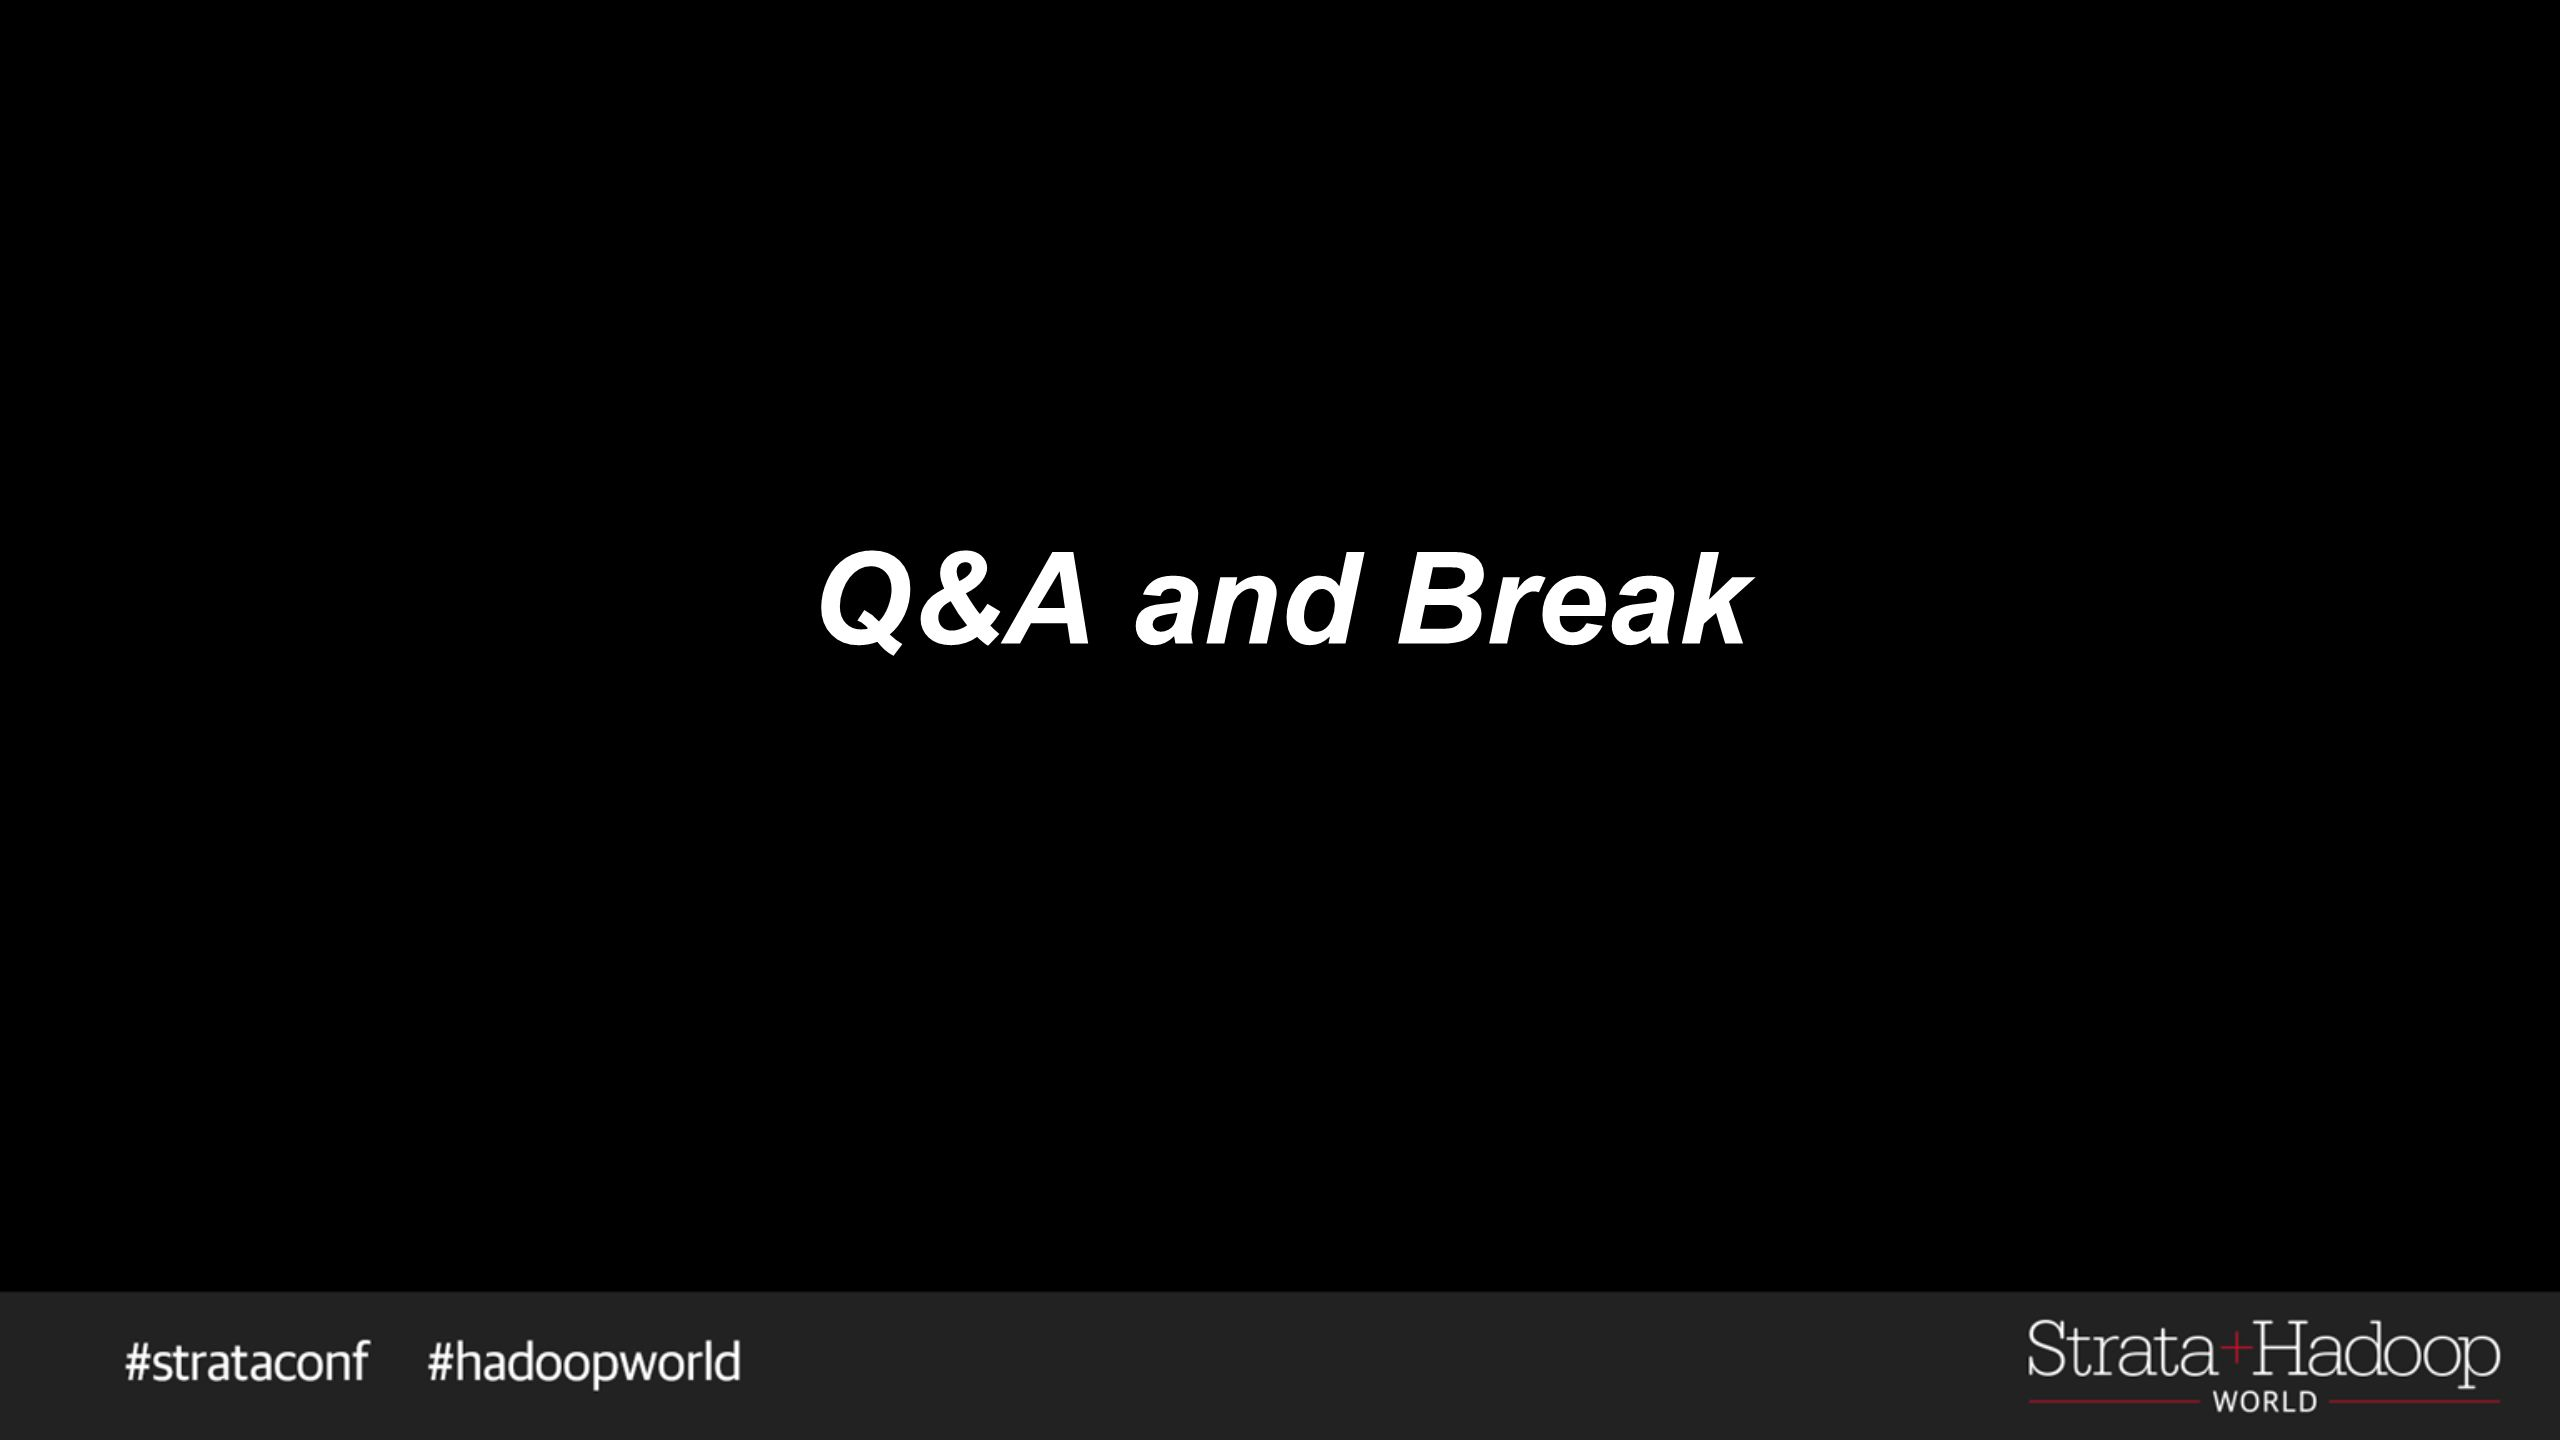 Q&A and Break